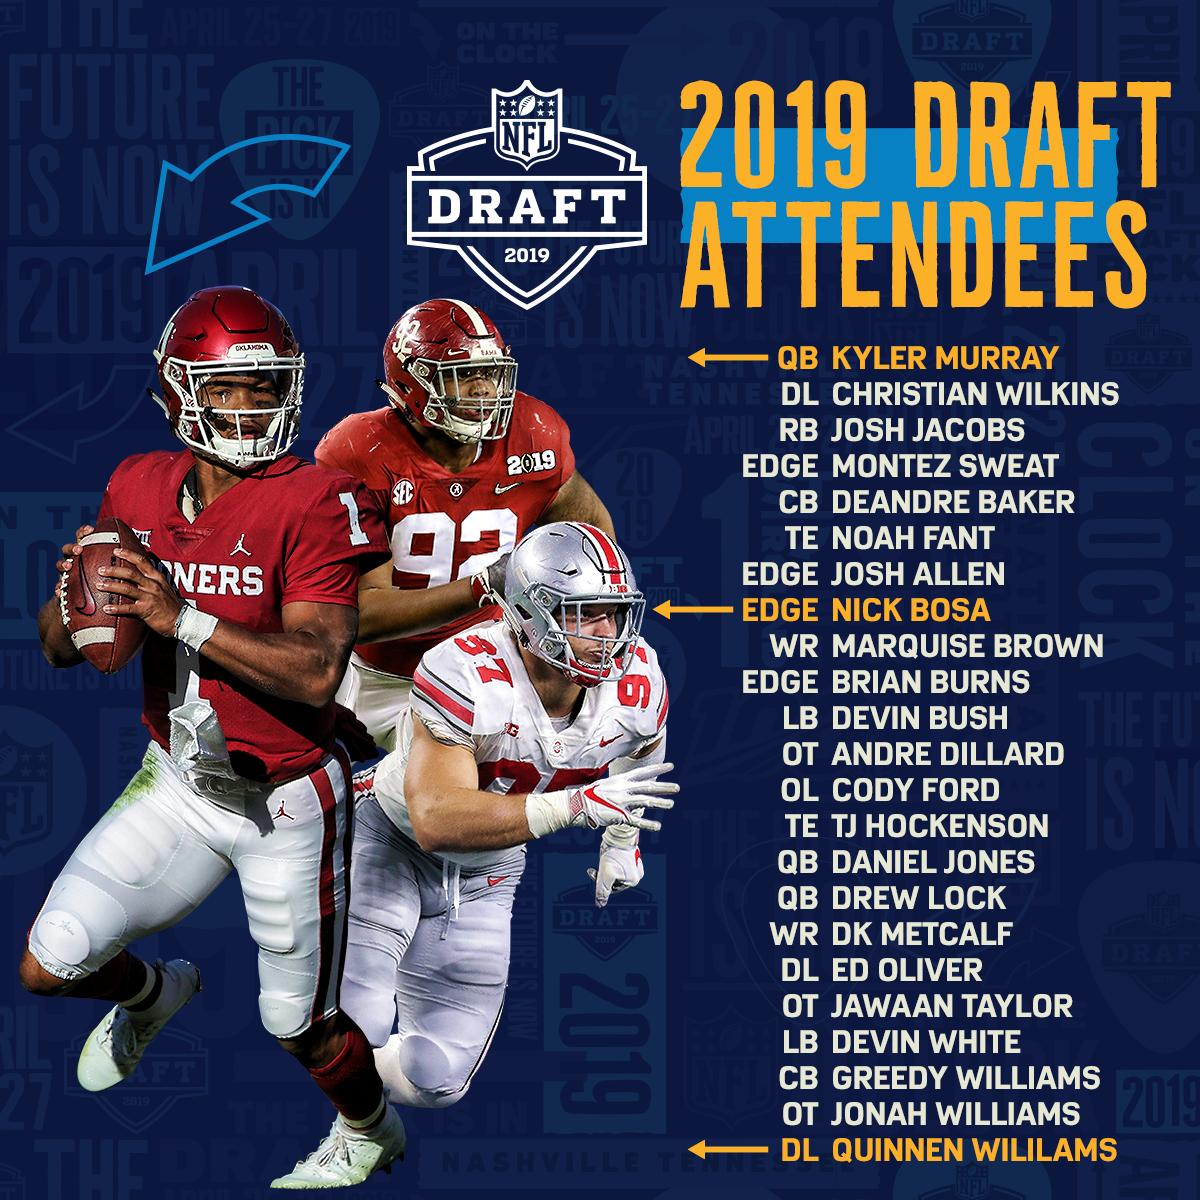 Nfl On Twitter These 23 Prospects Will Attend The 2019 Nfldraft